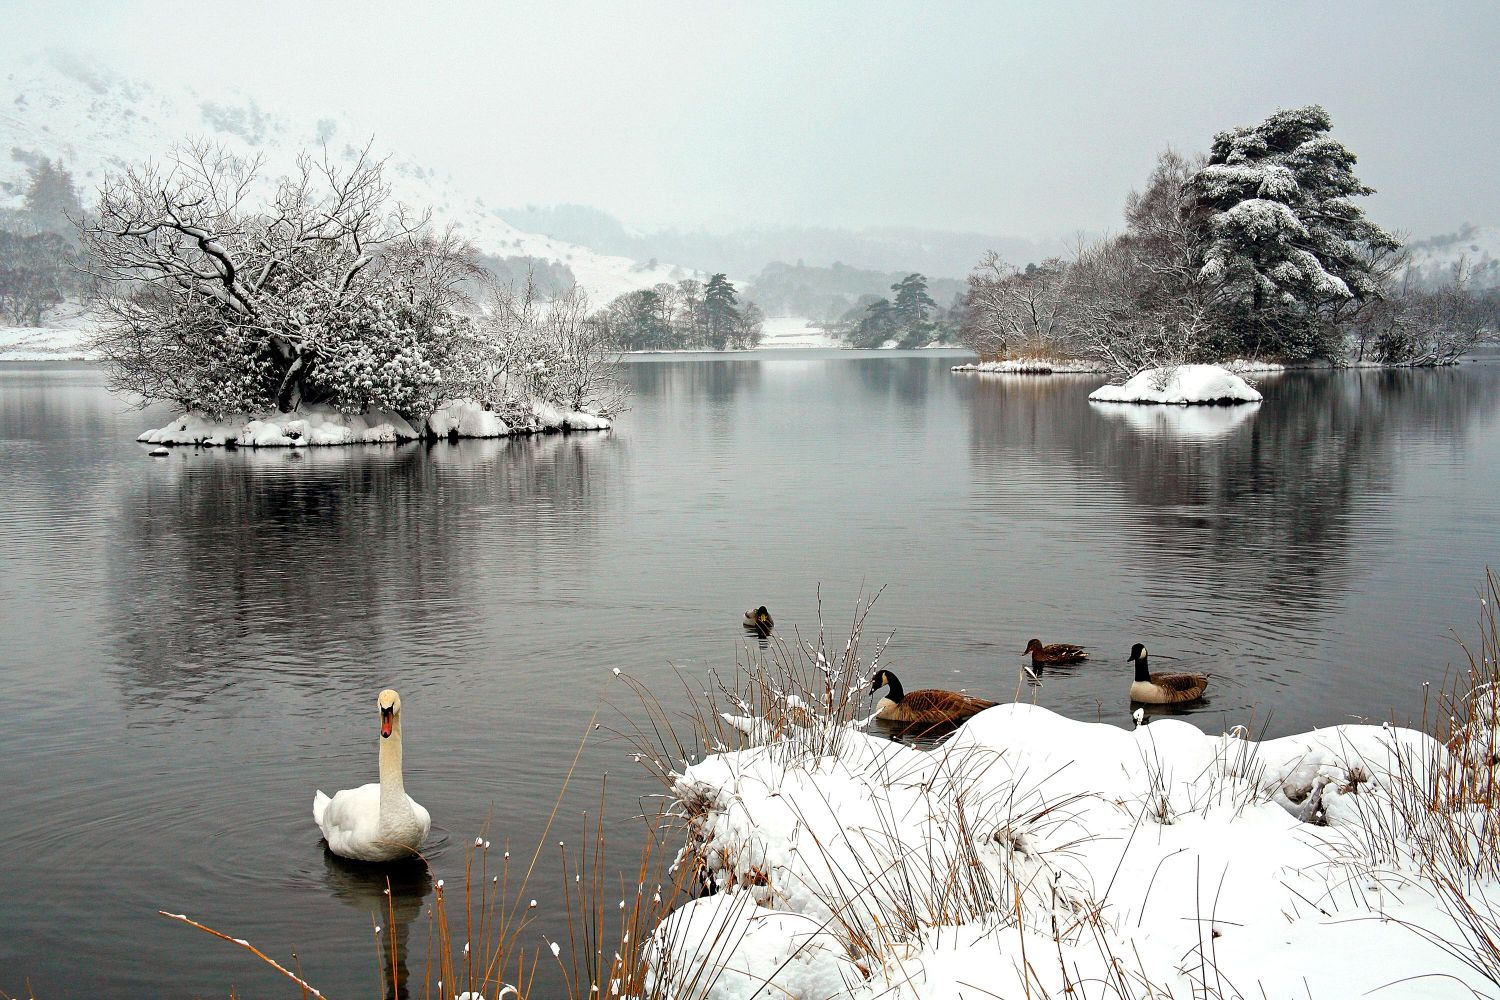 A beautiful swan and geese taken at Rydal Water after very heavy snow